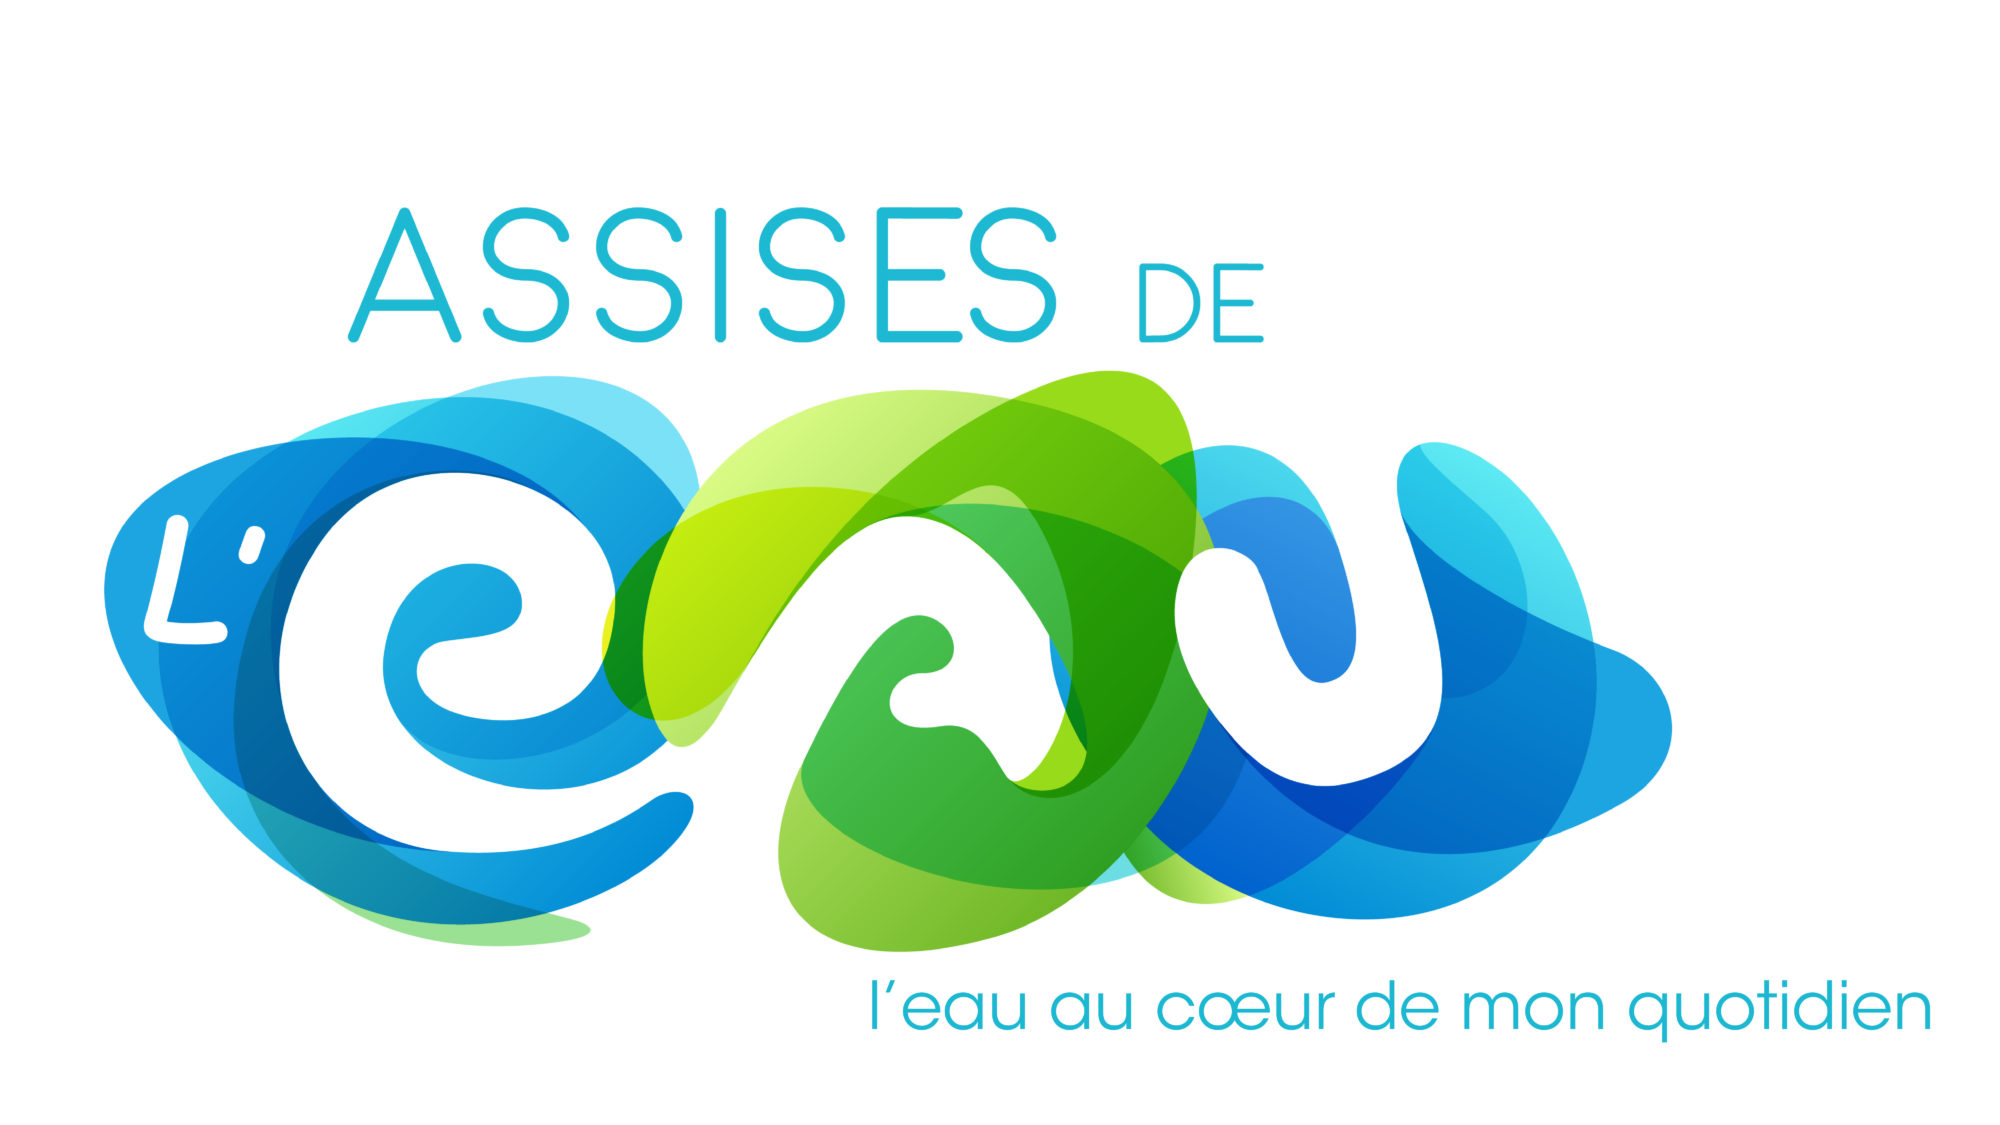 Assises de l'eau : Motion des associations nationales de collectivités territoriales (novembre 2018)